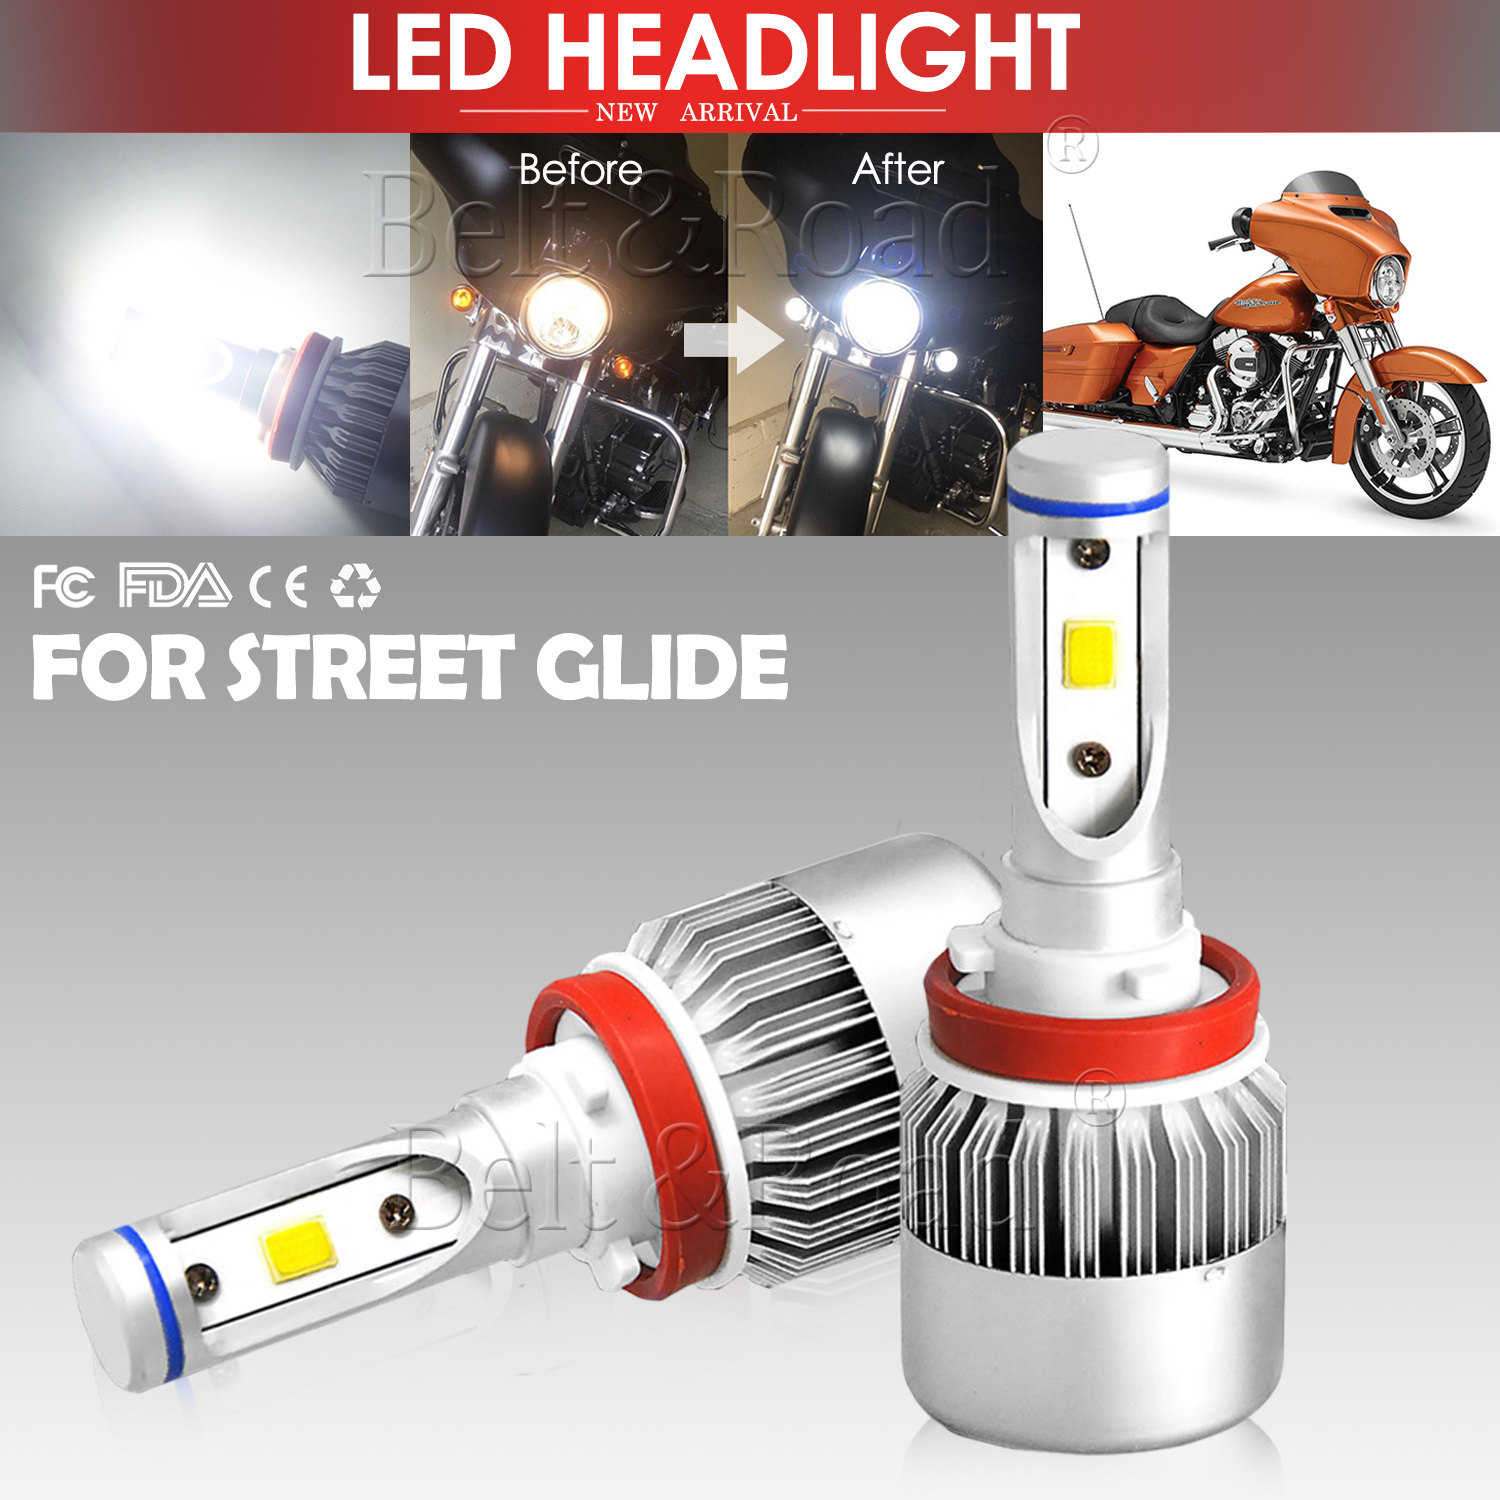 Harley Car Led Headlight Conversion Kit 6000k 7600lm White Super Bright Bulbs